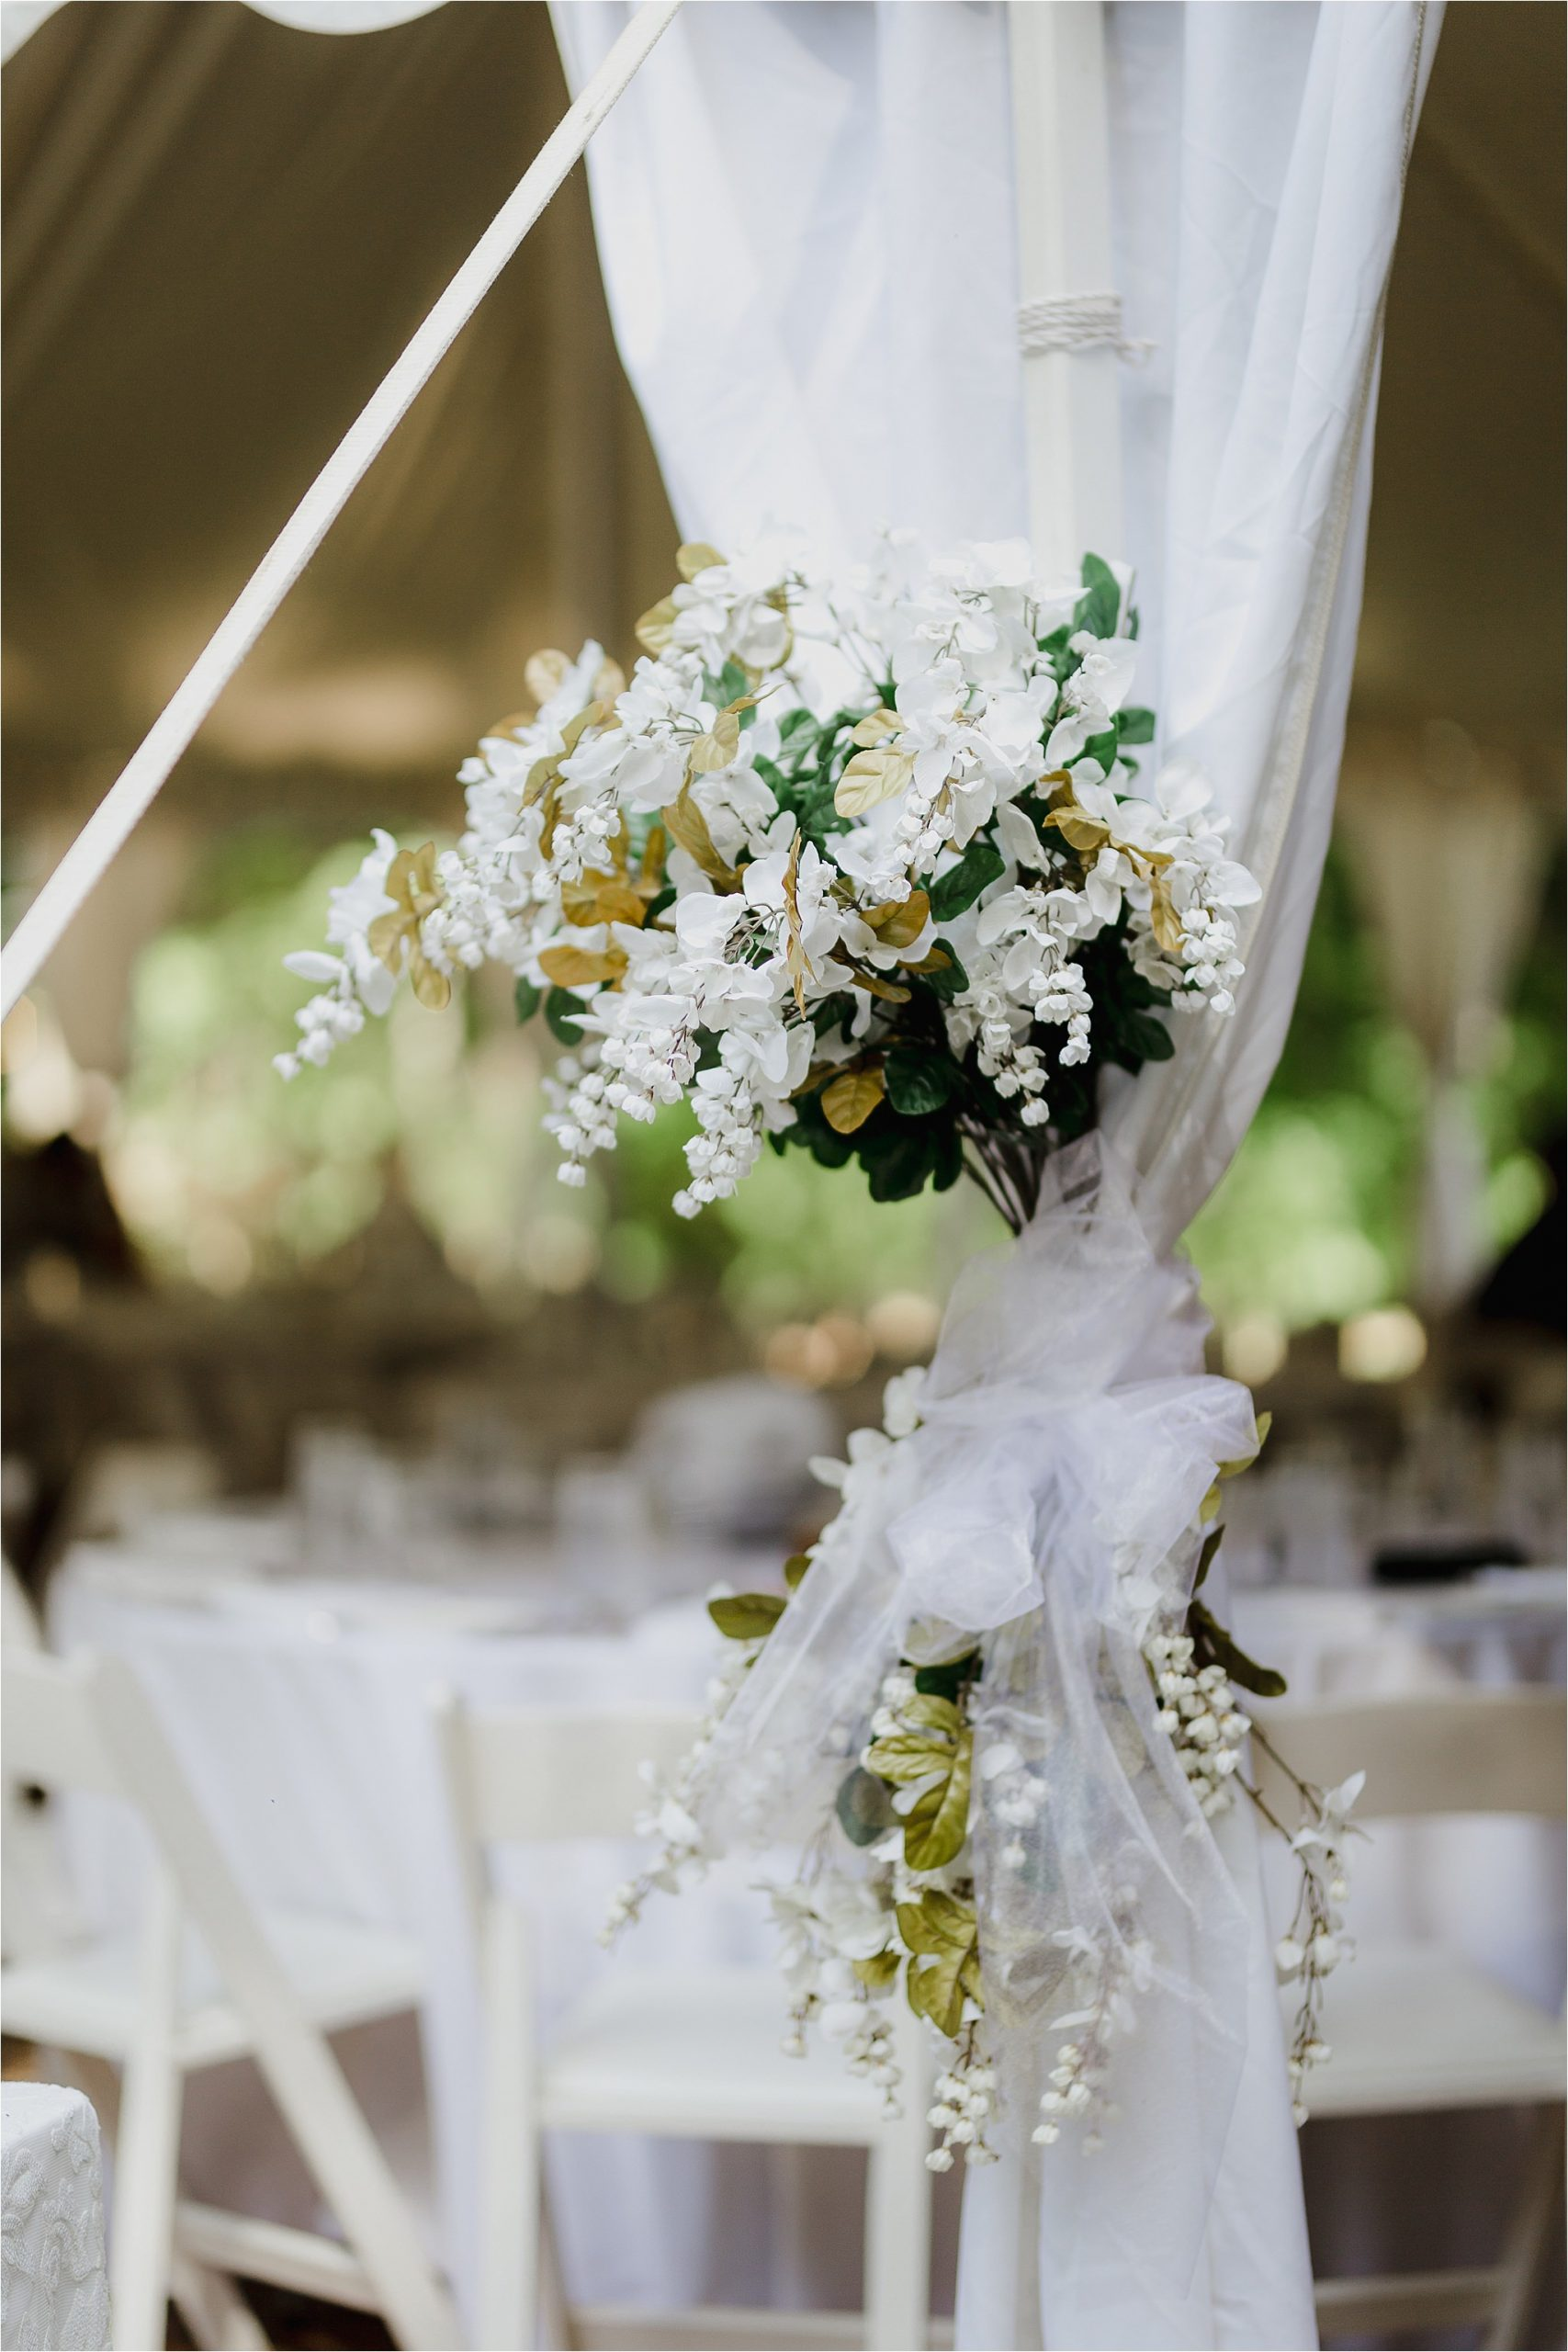 Sonia V Photography, The Clearing reception wedding venue, outdoor tent dinner decor